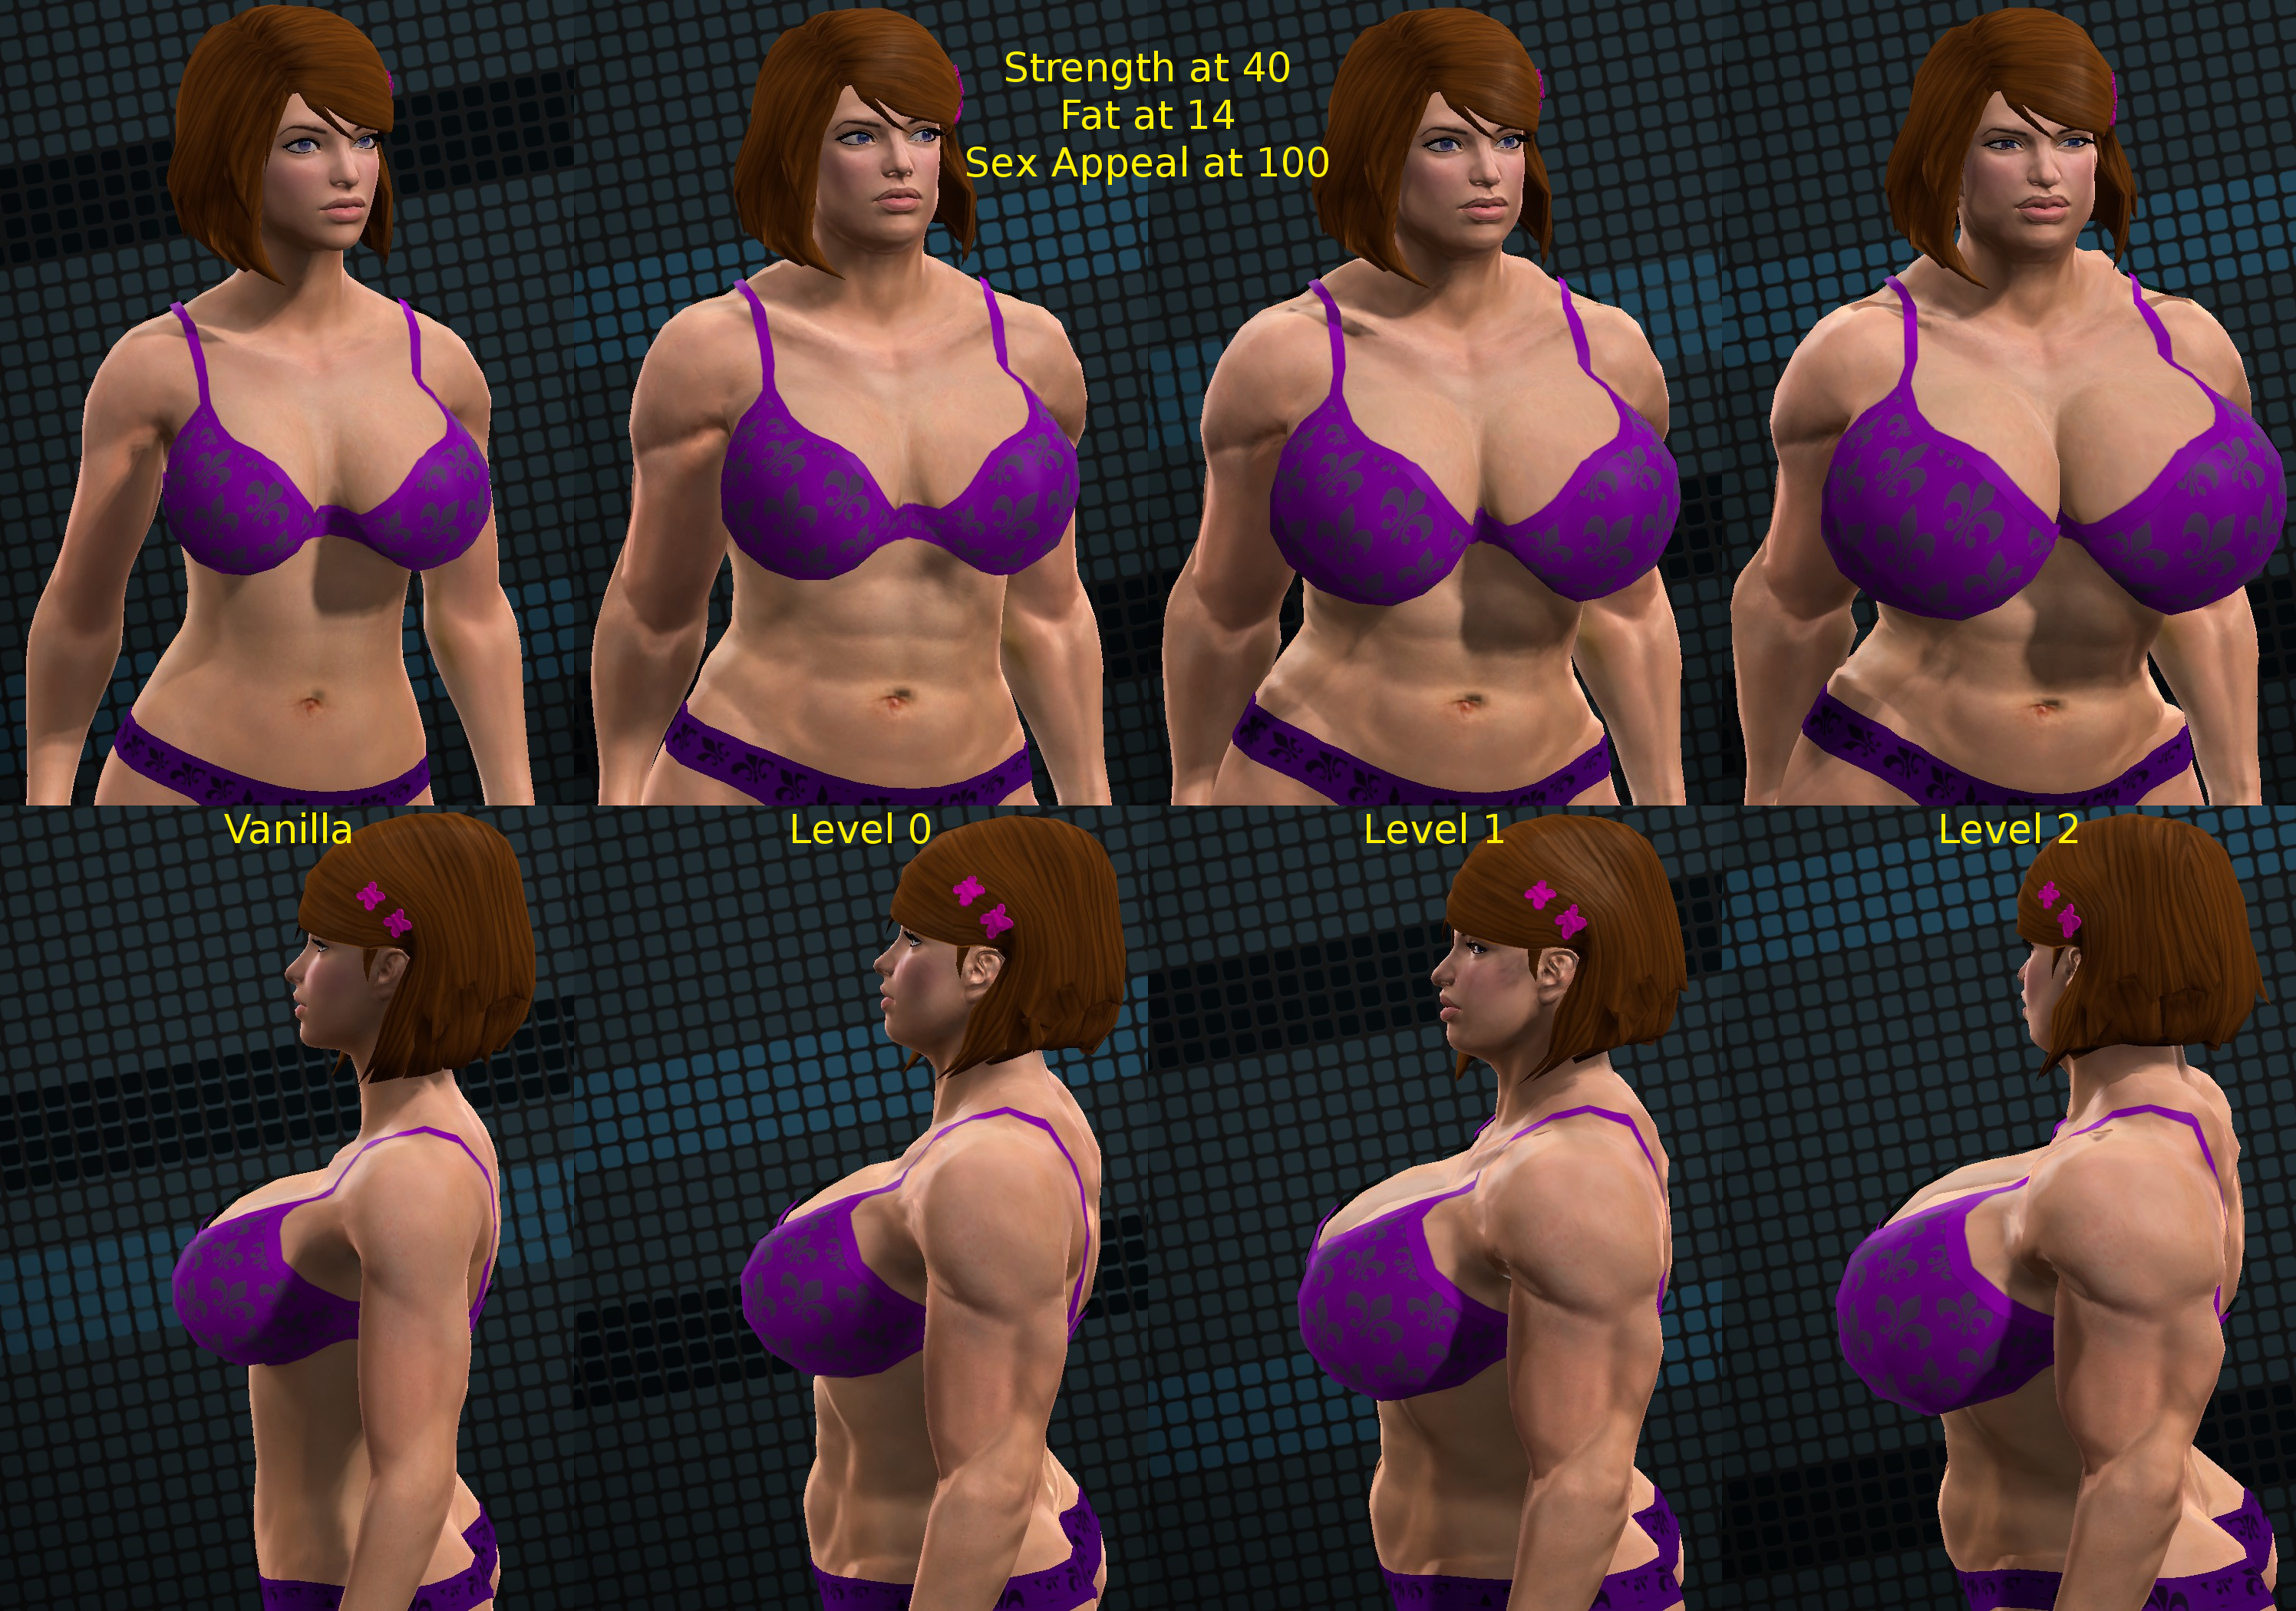 Saints row 2 naked stripers sexy photos